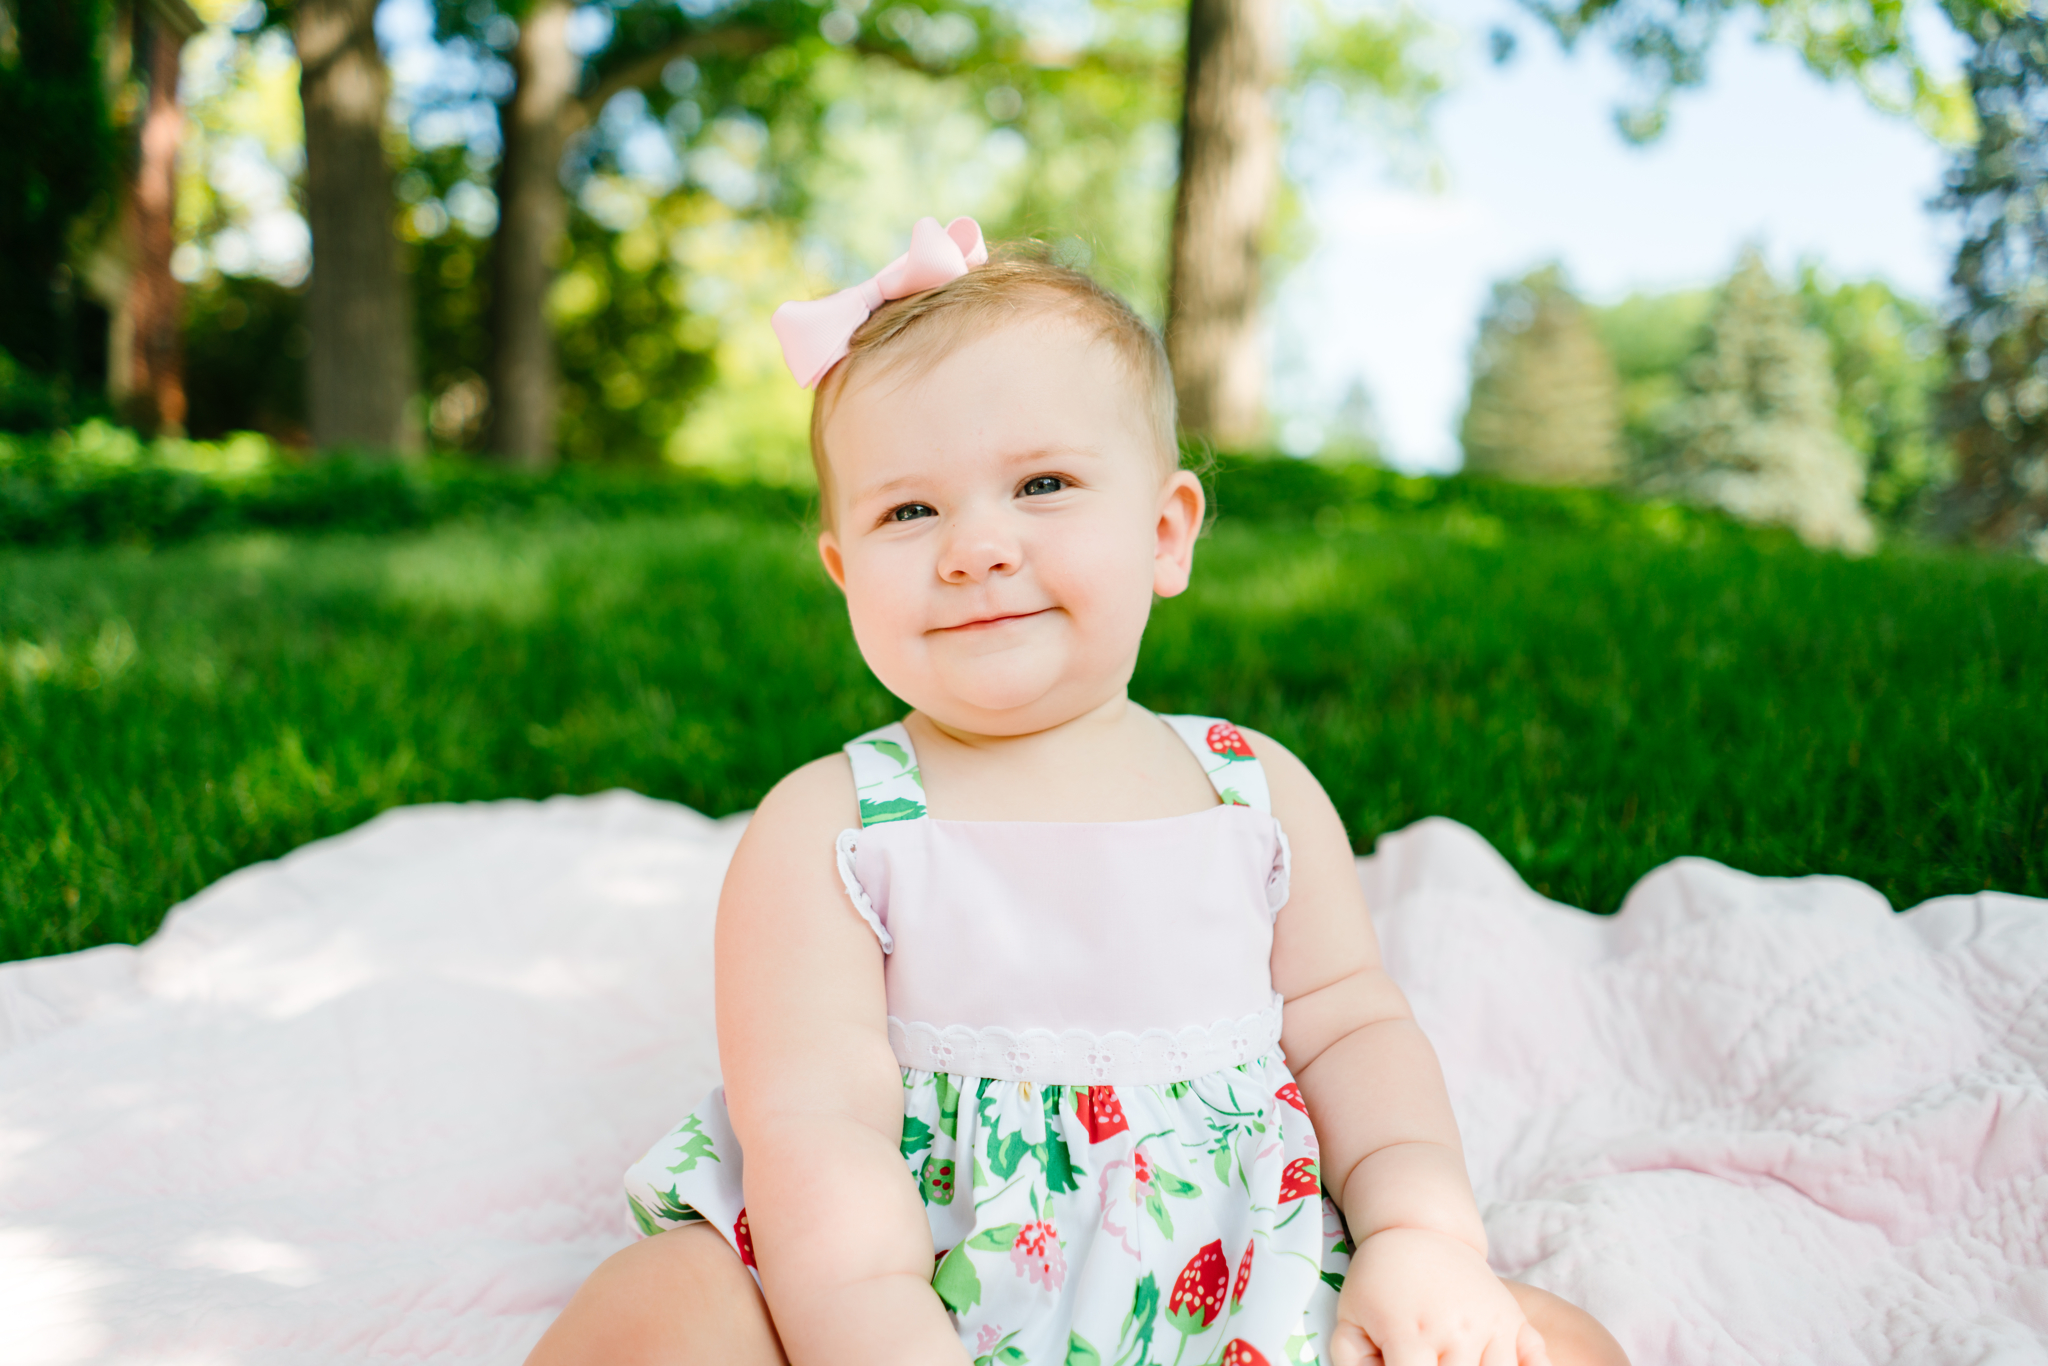 Bothell Lifestyle Newborn Photographer, Hello Narwhal